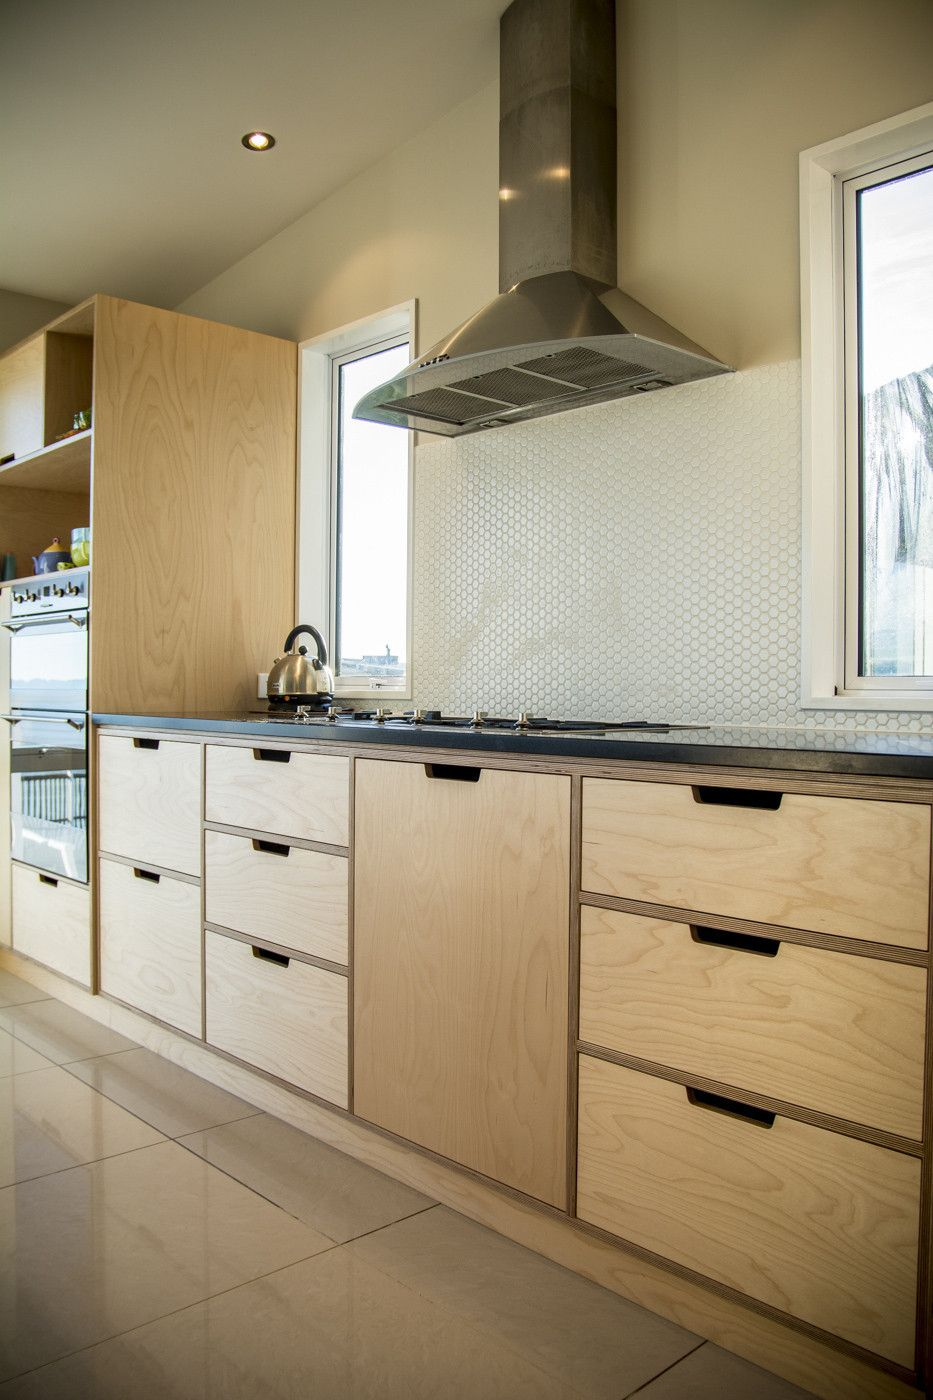 Bespoke Doors For Ikea Kitchen Cabinets Davies Drive | Kitchens/dining | Cocinas Enchapadas